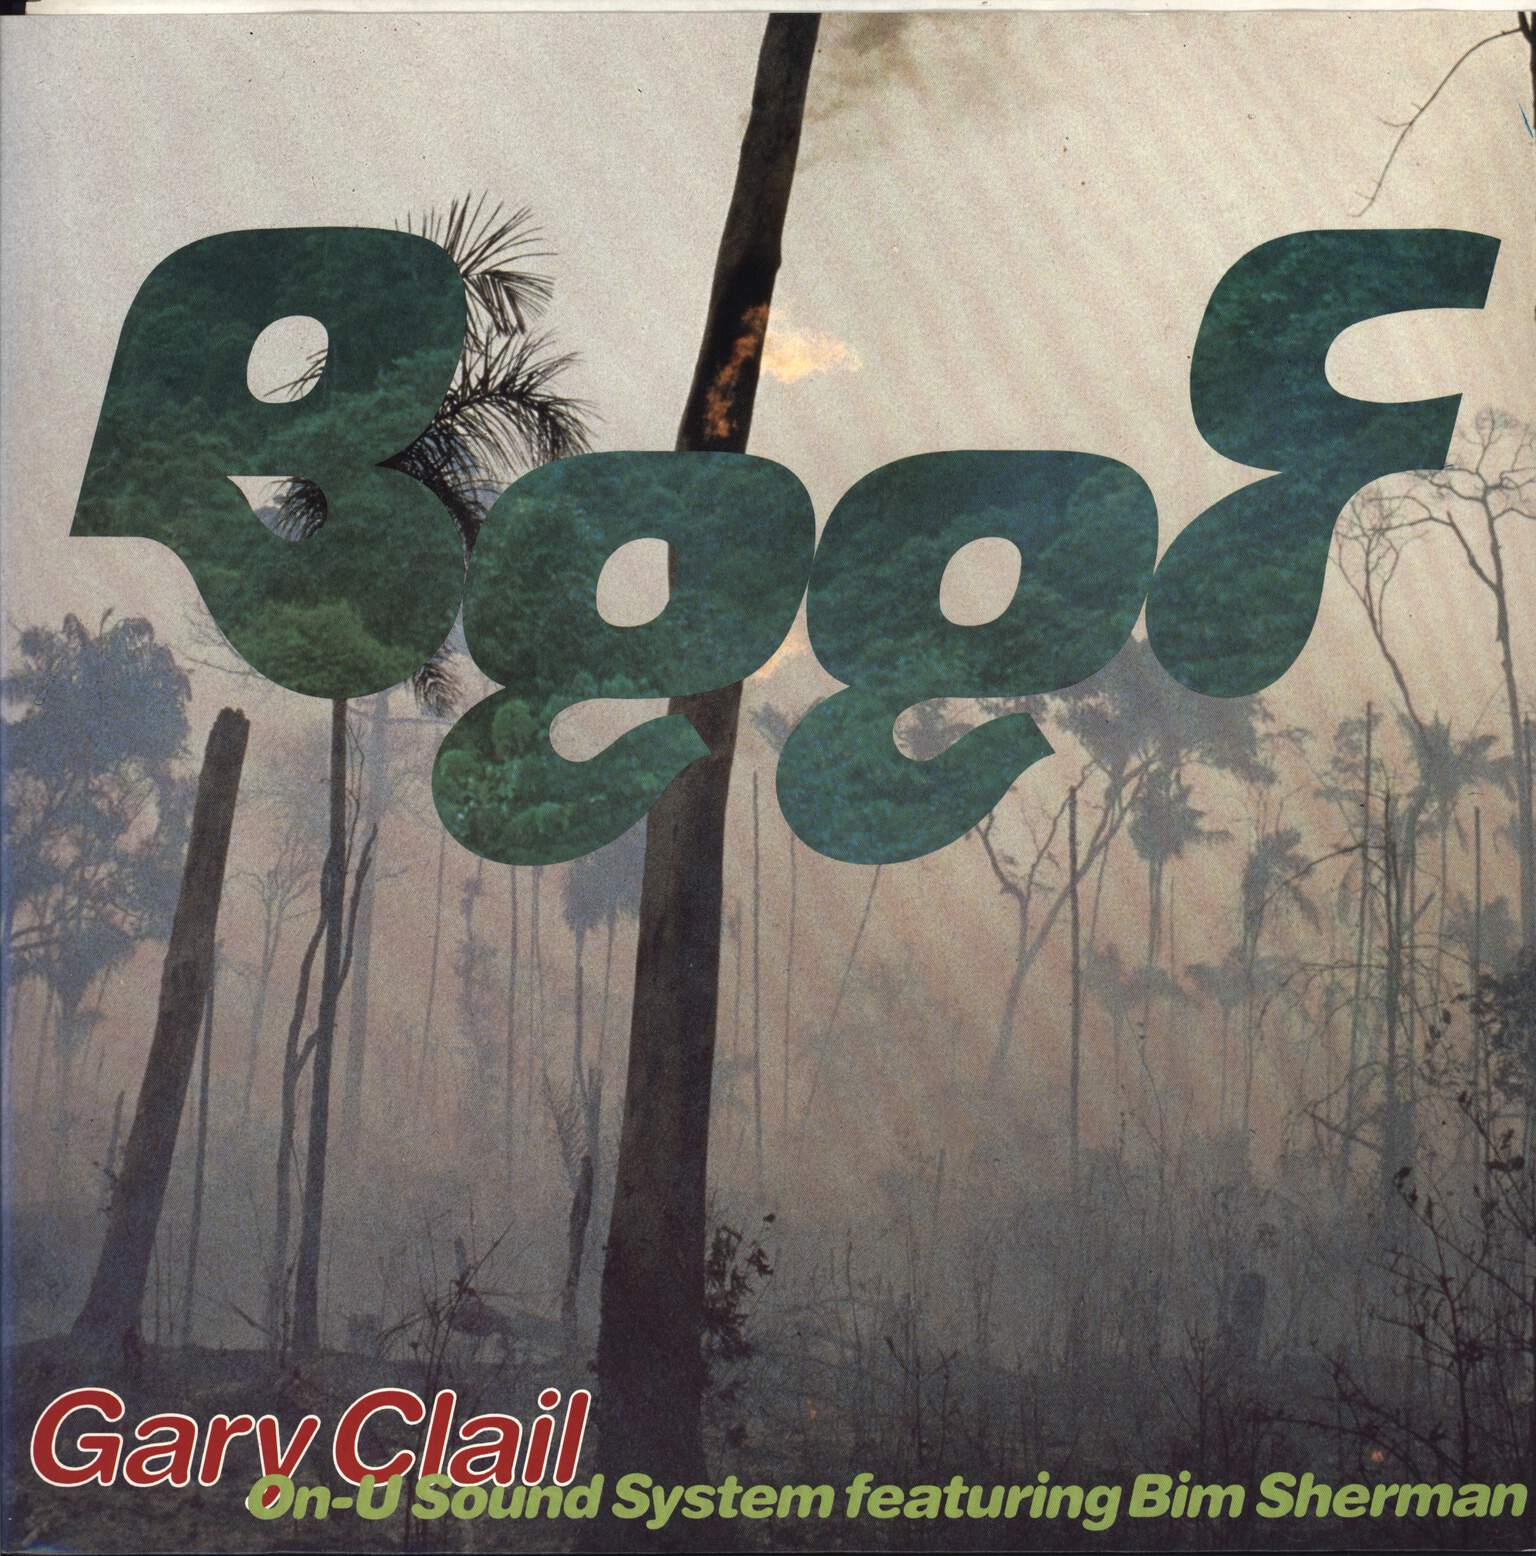 "Gary Clail & On-U Sound System: Beef, 12"" Maxi Single (Vinyl)"